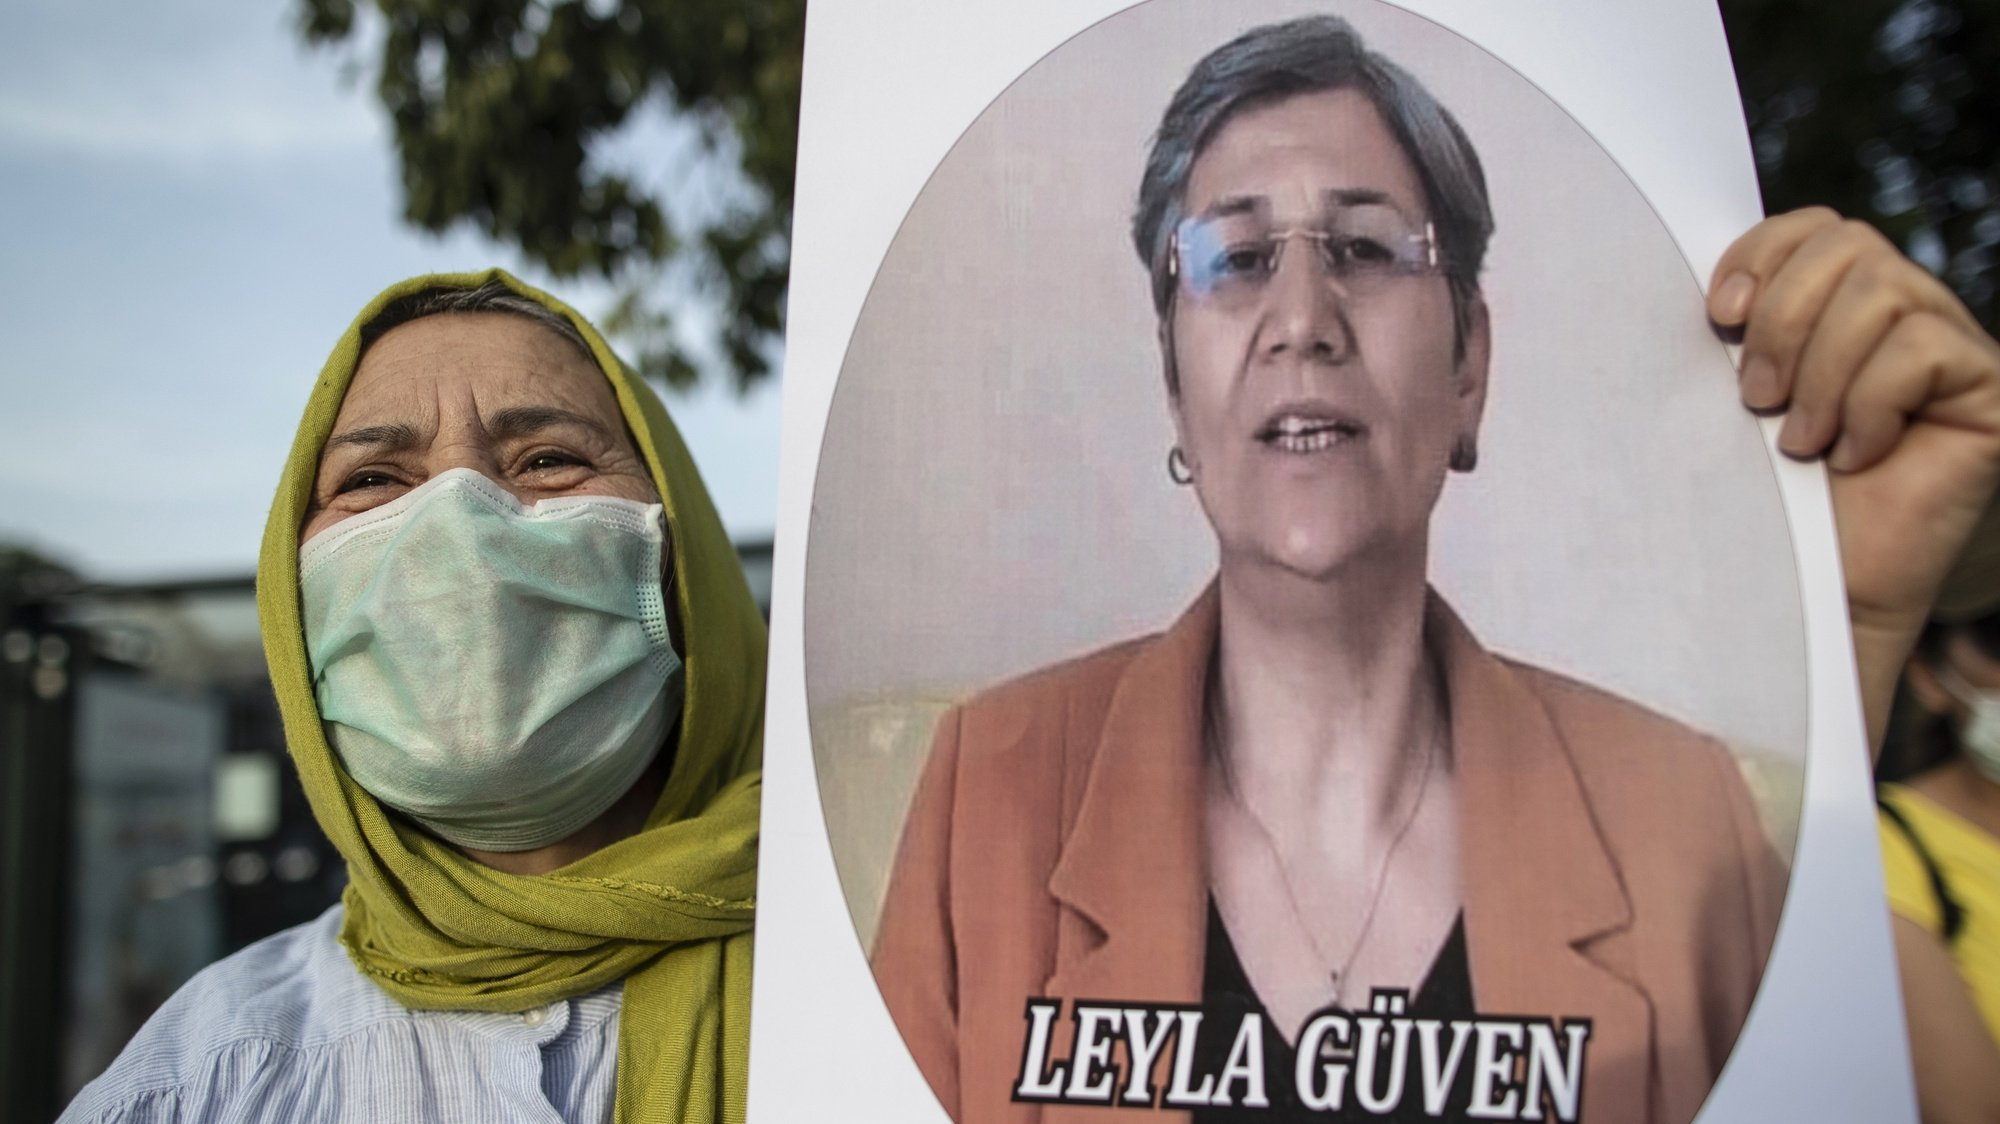 epa08469642 A woman holds picture of Leyla Guven during a protest against the arrest of pro-Kurdish People's Democtaric Party HDP parliamentarians Leyla Guven and Musa Farisogullari, in Istanbul, Turkey, 06 June 2020. The opposition politicians were stripped of their parliamentary seats and taken into custody.  EPA/ERDEM SAHIN